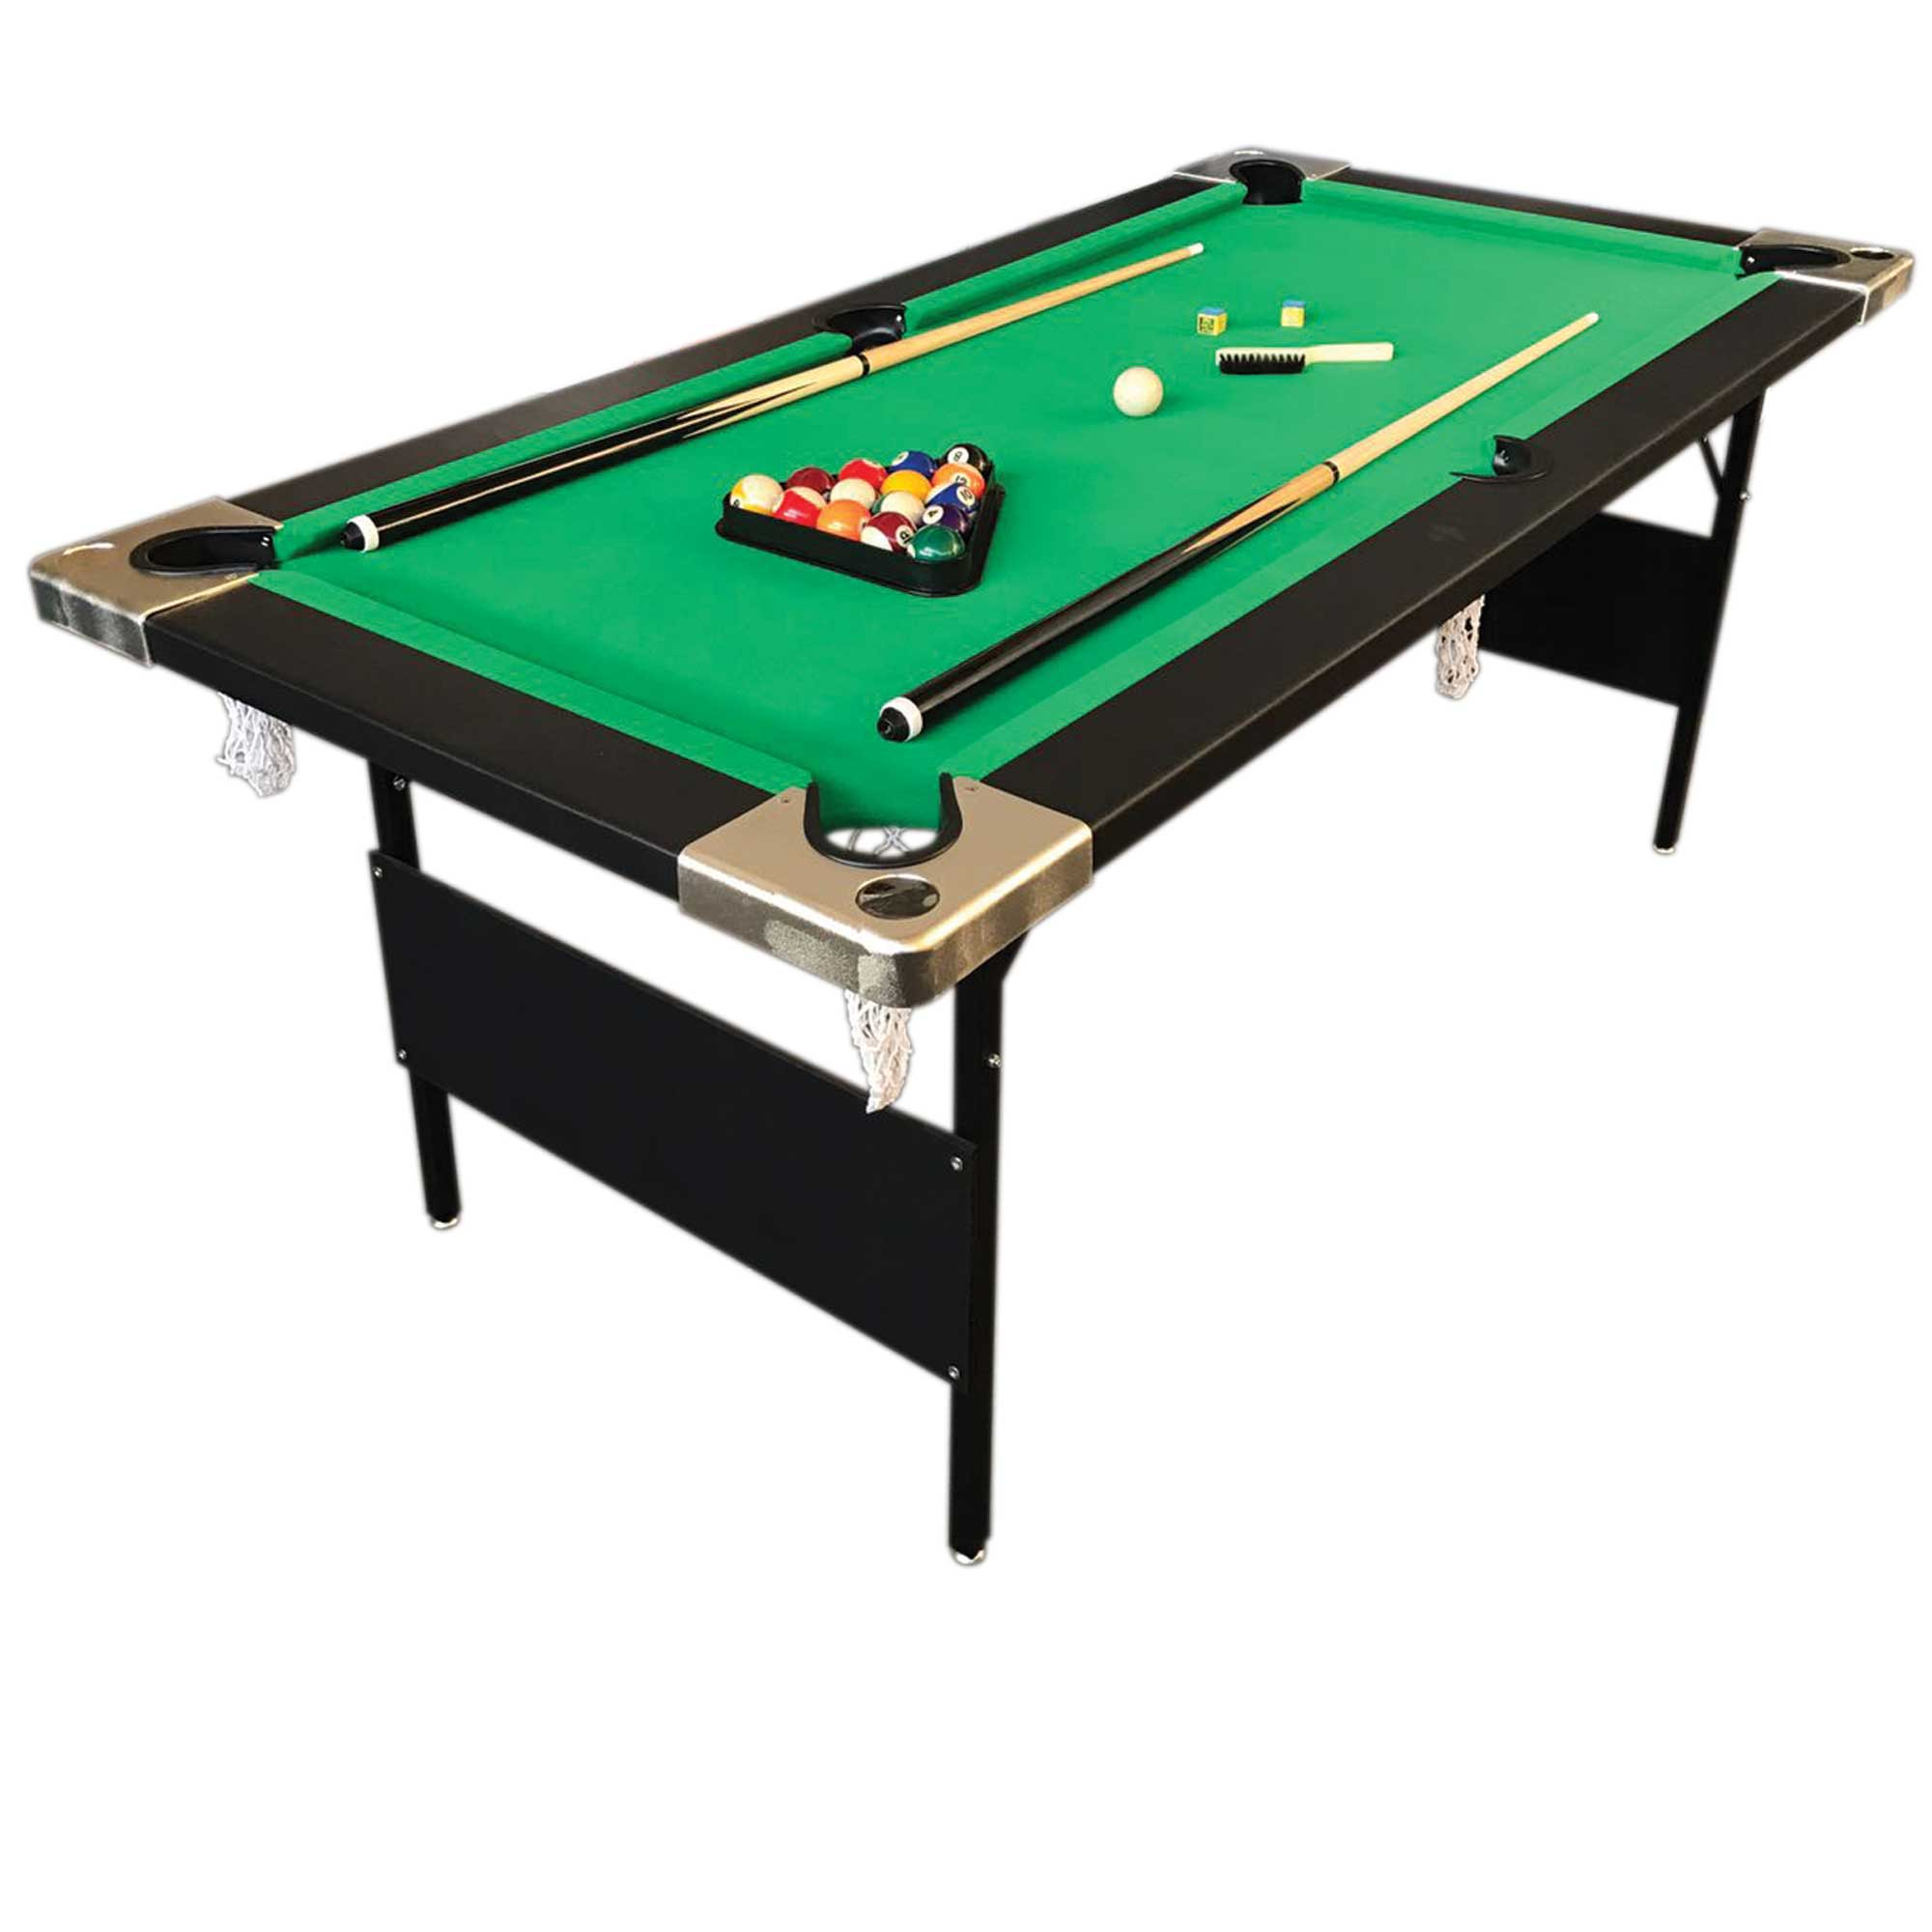 6 39 feet billiard pool table portable snooker accessories - Table billard pas cher ...